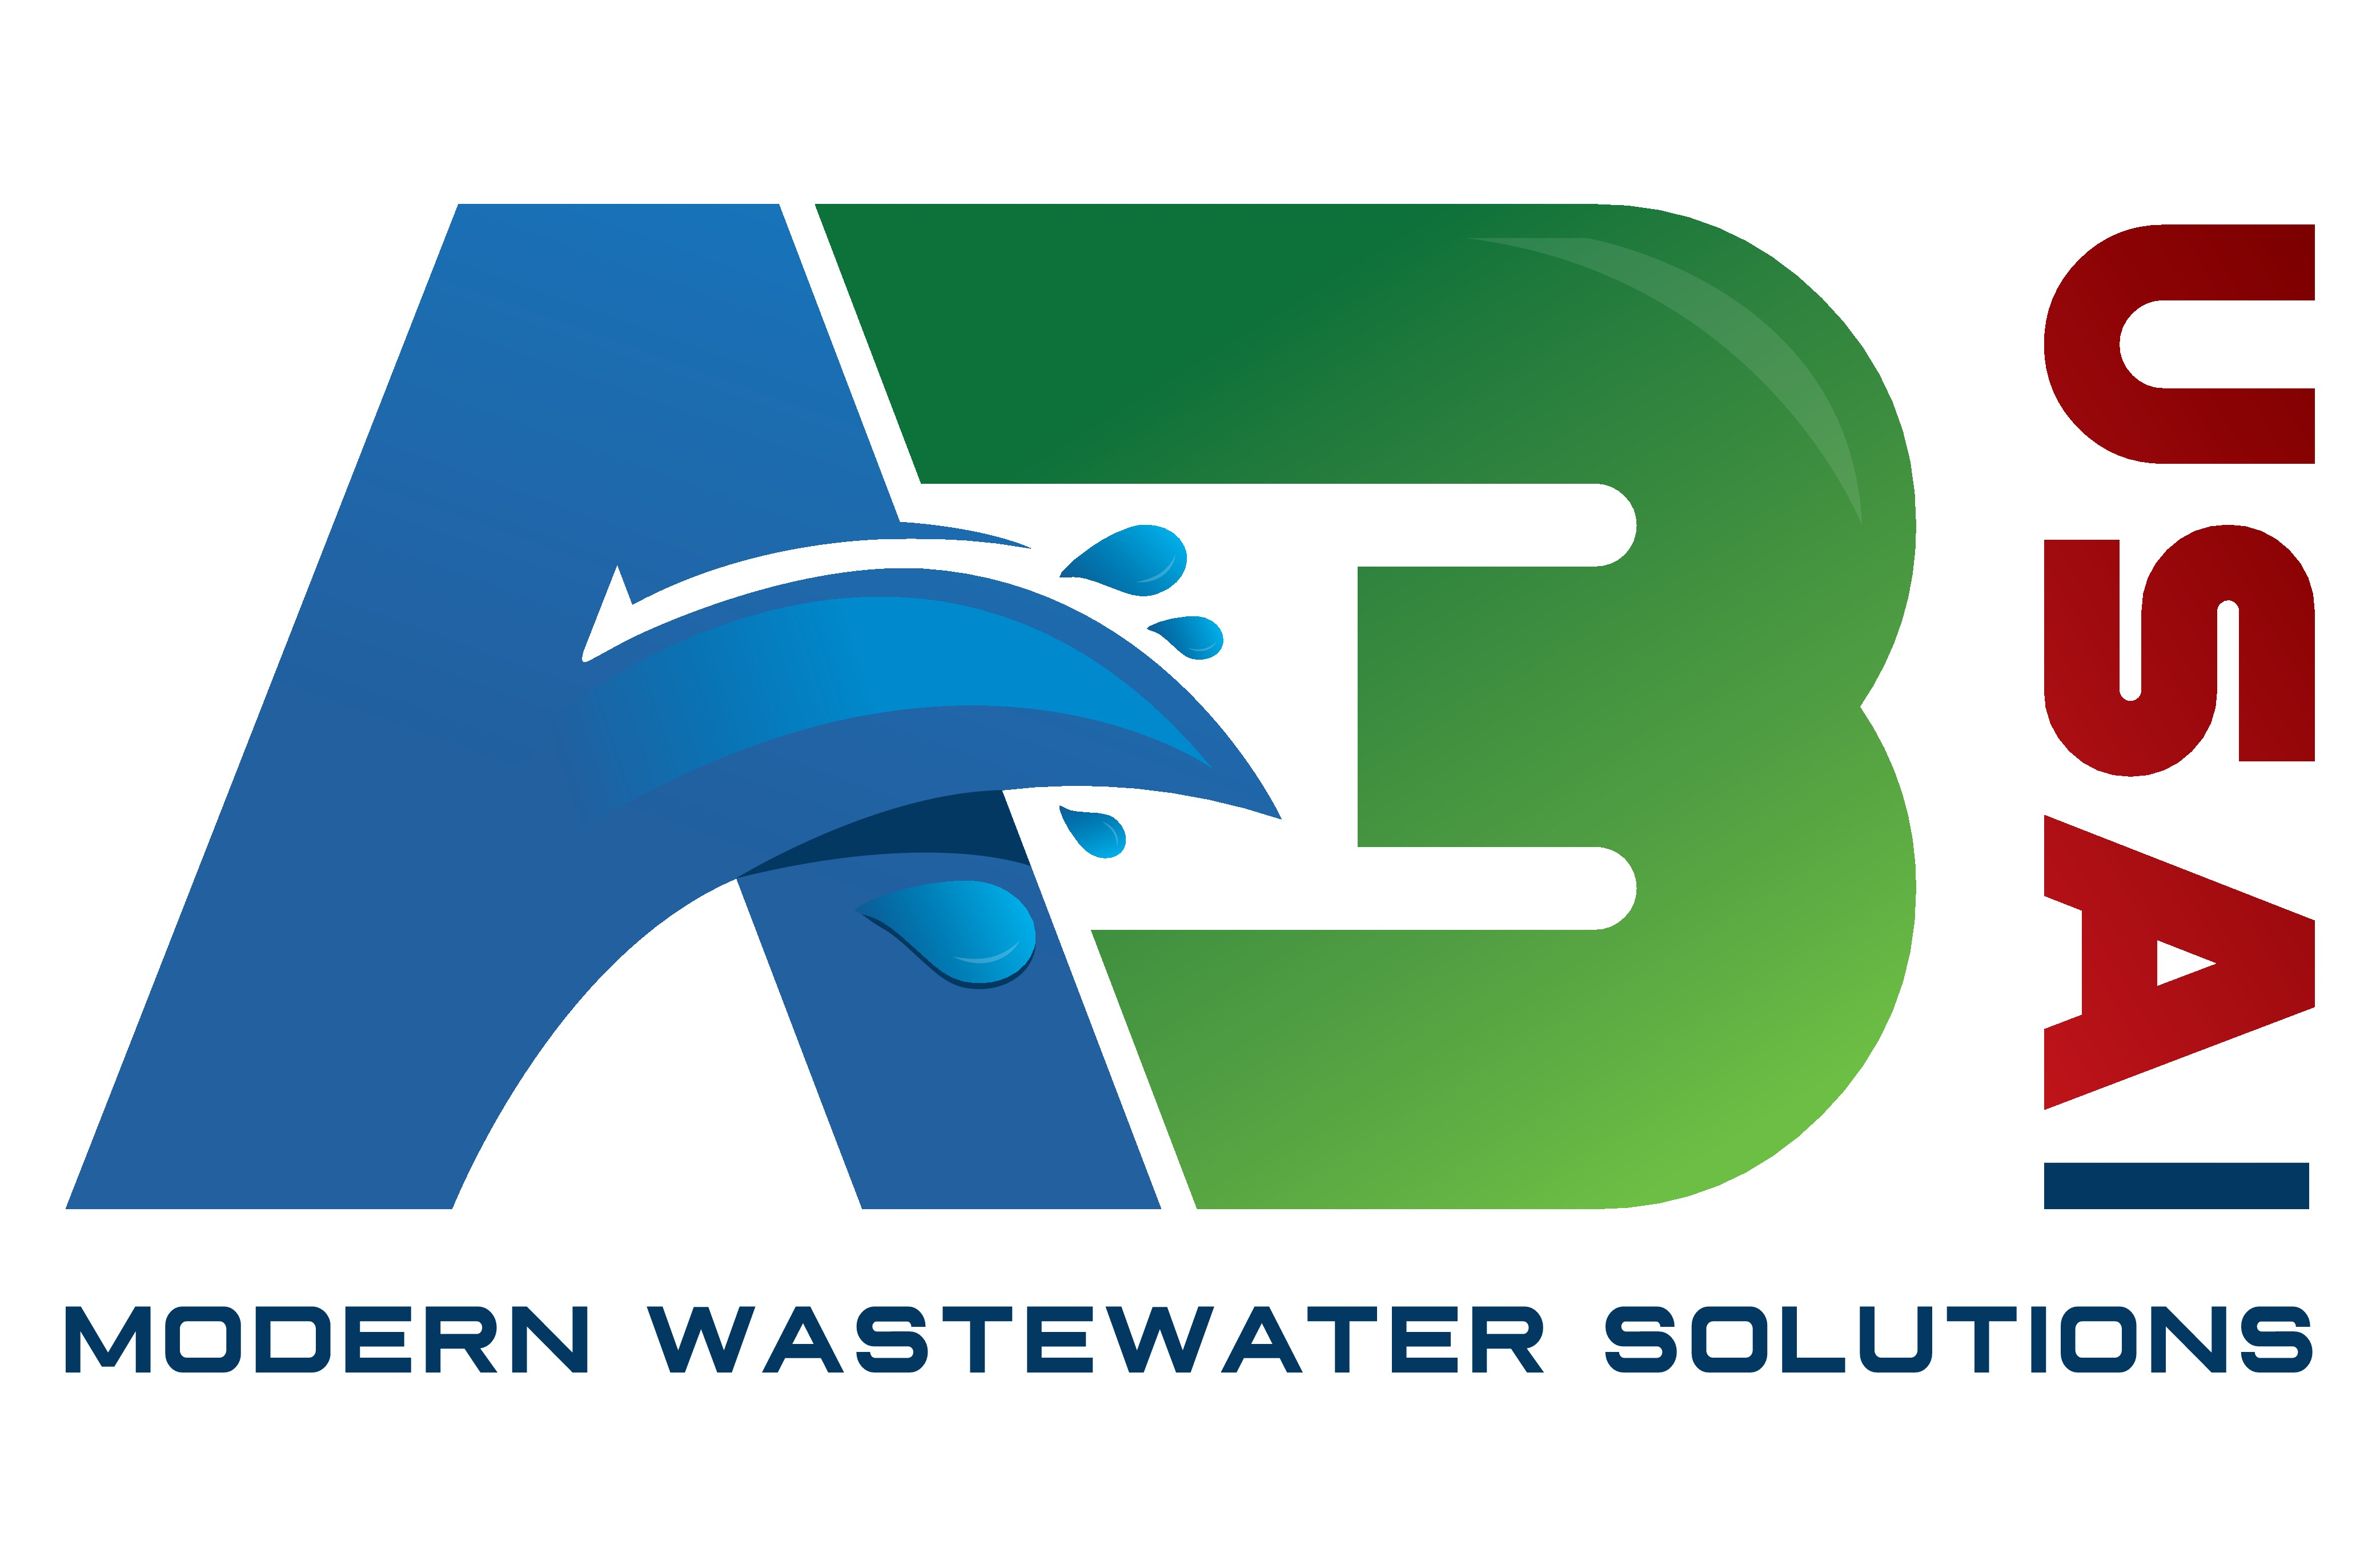 Logo design for a sustainable wastewater treatment solution firm